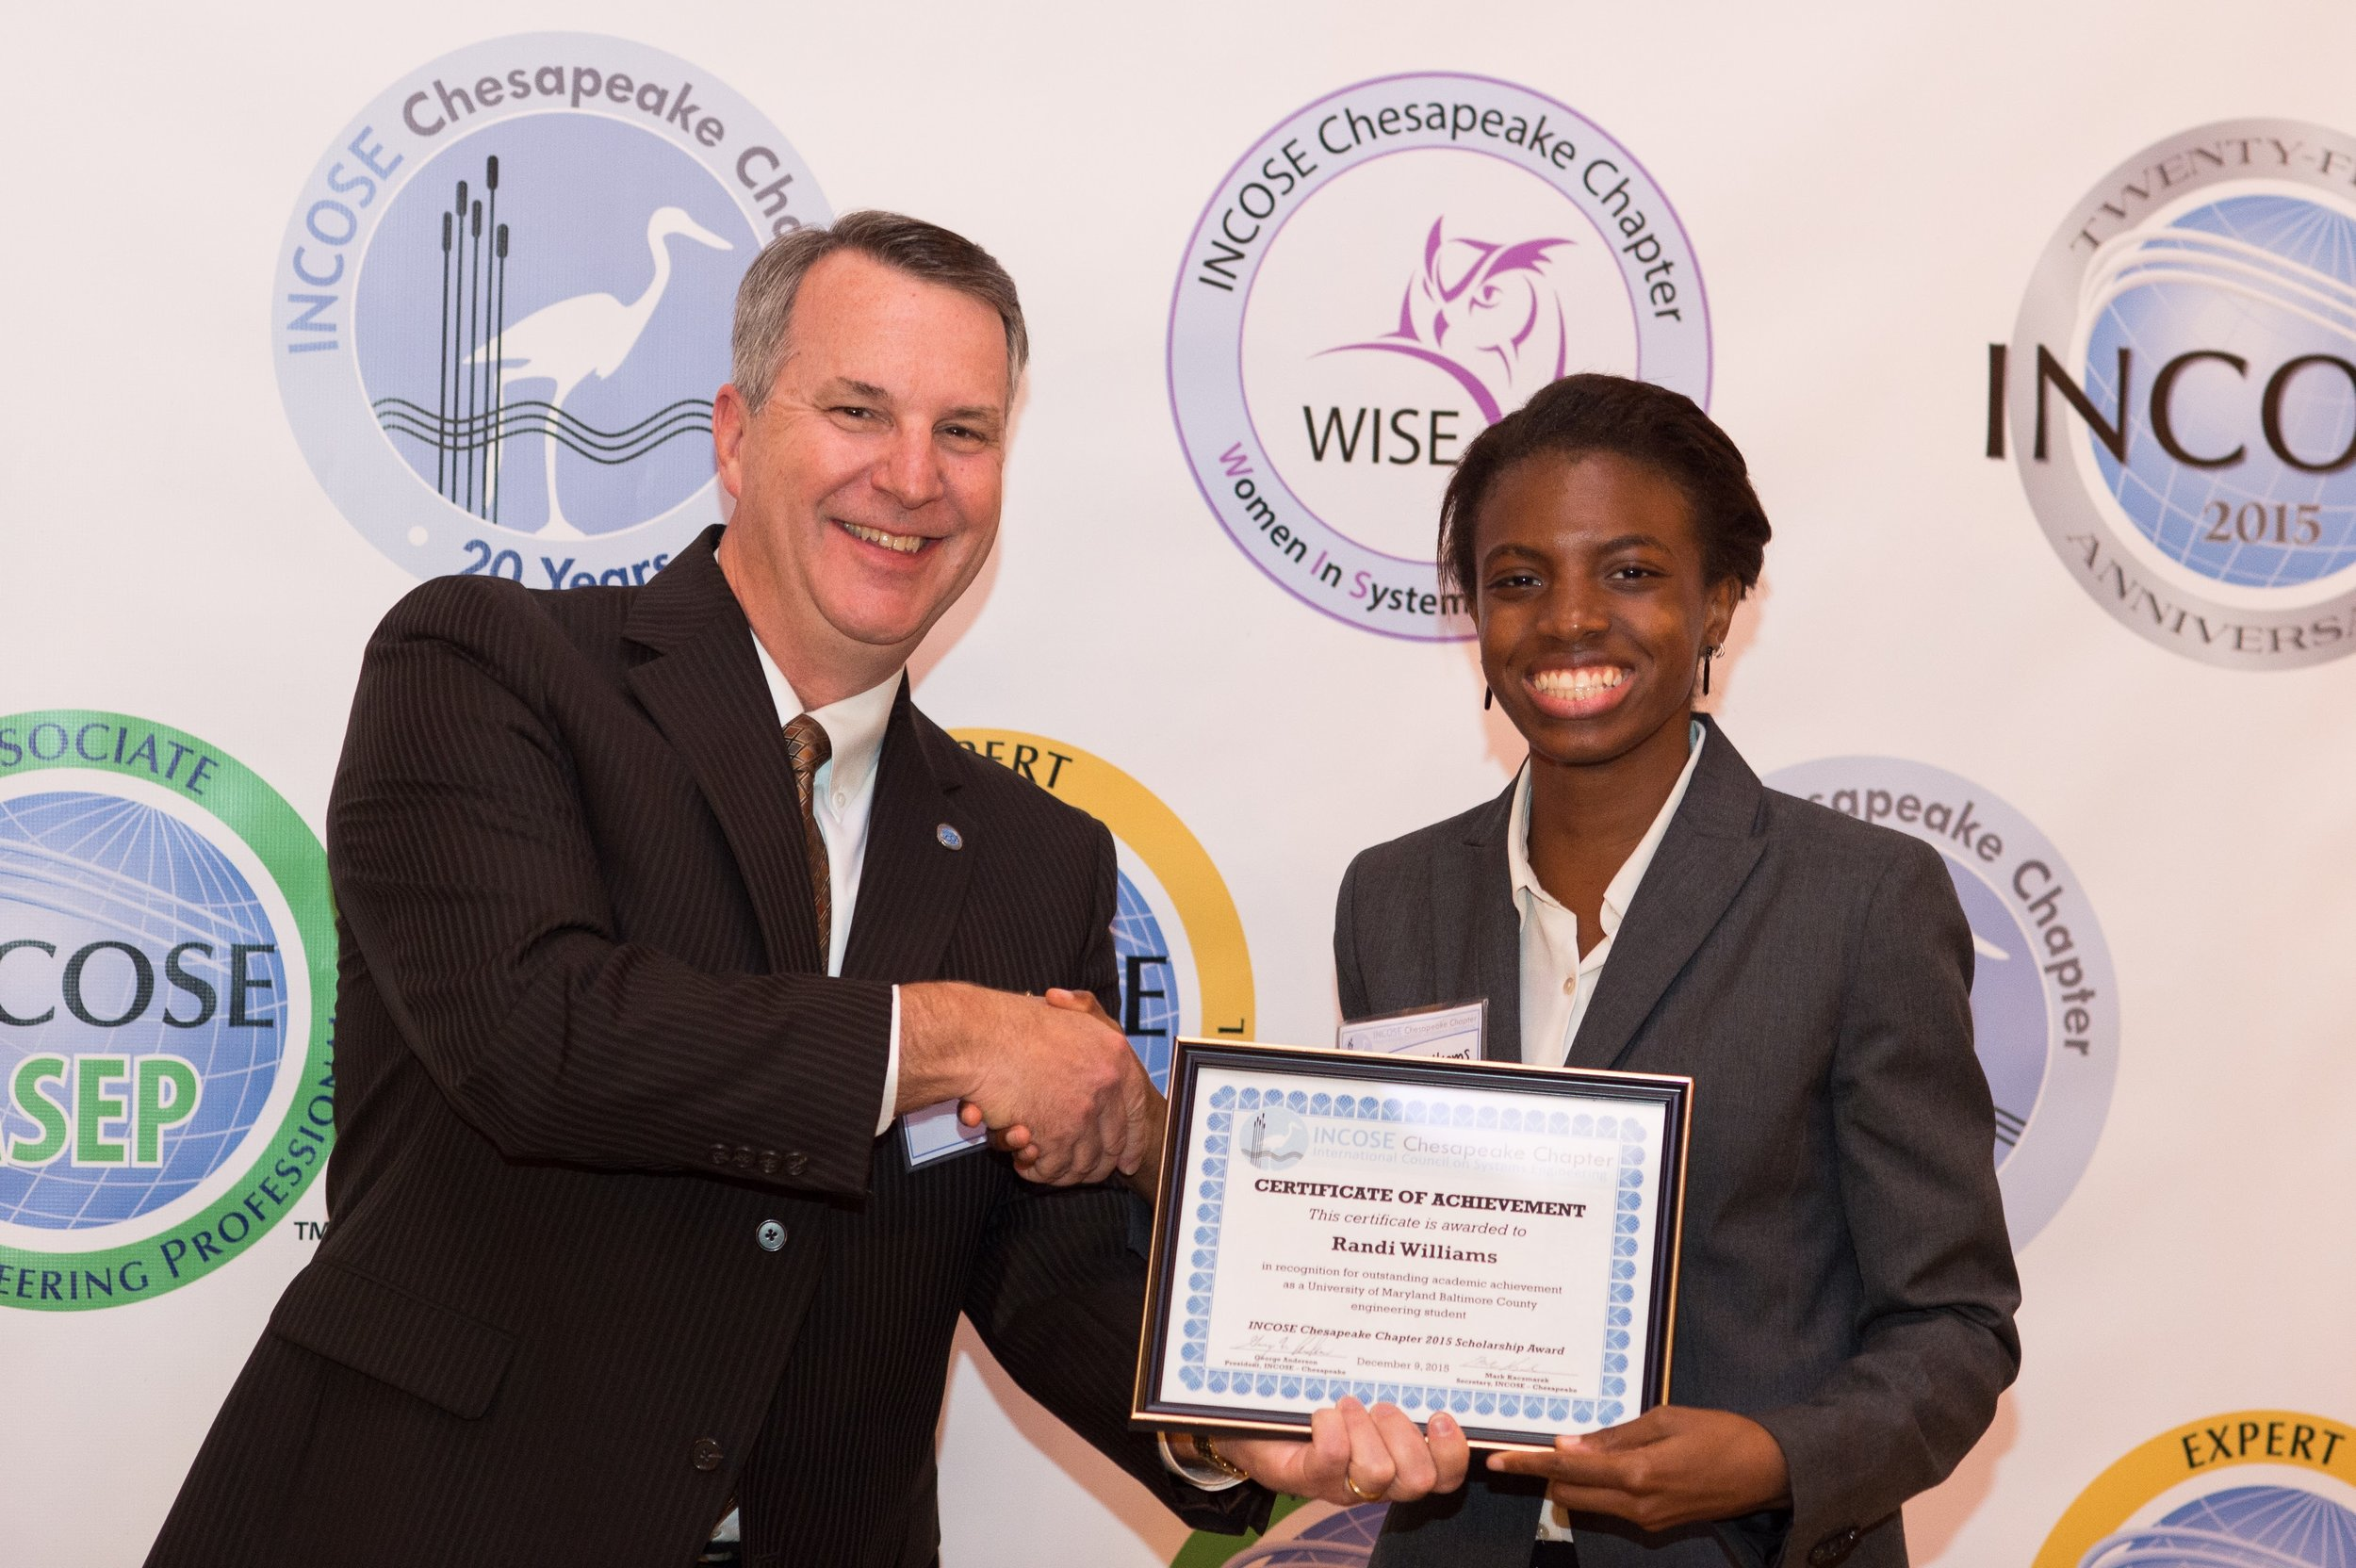 Randi Williams, University of Maryland Baltimore County (UMBC) receives a scholarship award from the Chesapeake Chapter and Chairman of the Scholarship Committee, Bob Levin.